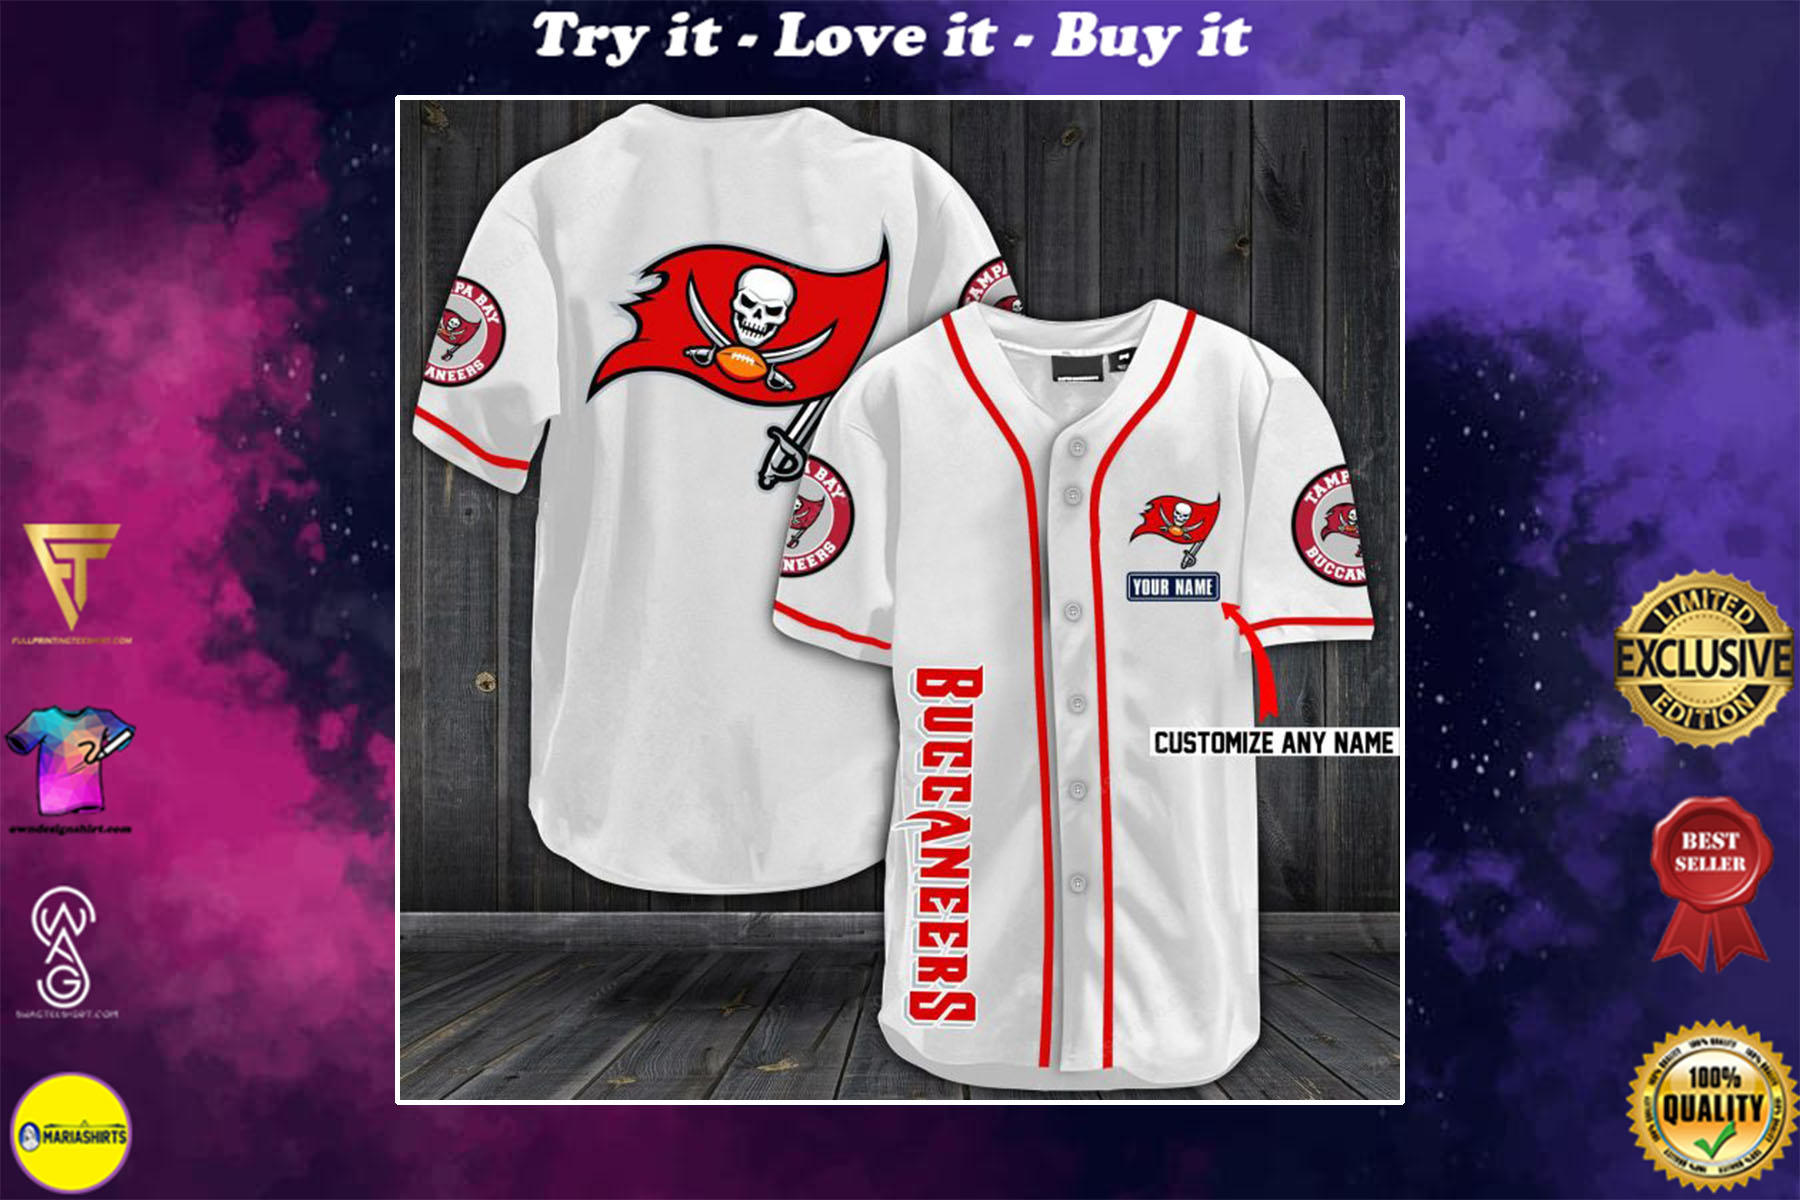 [special edition] personalized name jersey tampa bay buccaneers full printing shirt - maria